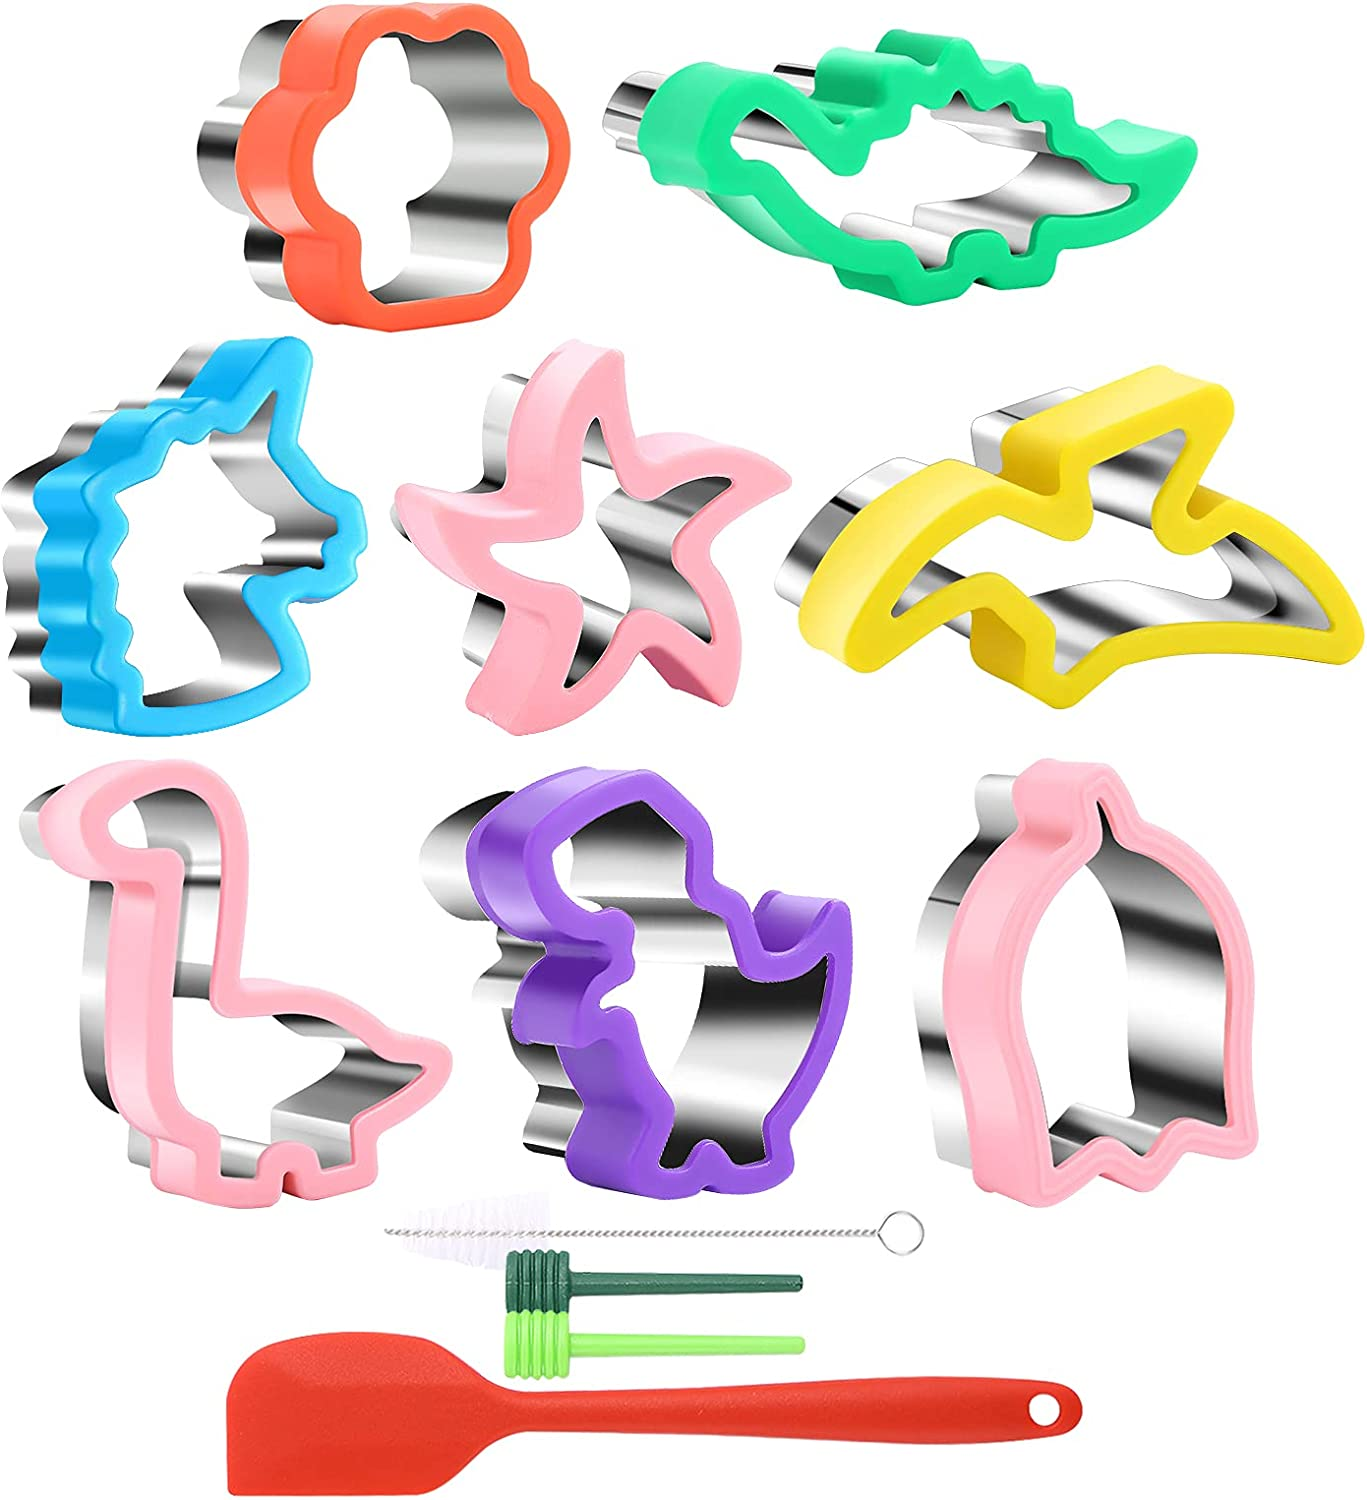 Stainless Steel Cookie Cutter Set, Fanerfun Sandwich Cutters for Kids, Dinosaur & Tulip & Star Shapes & Butter Knife Vegetable Cutter Suitable for Baking Cakes Fruits